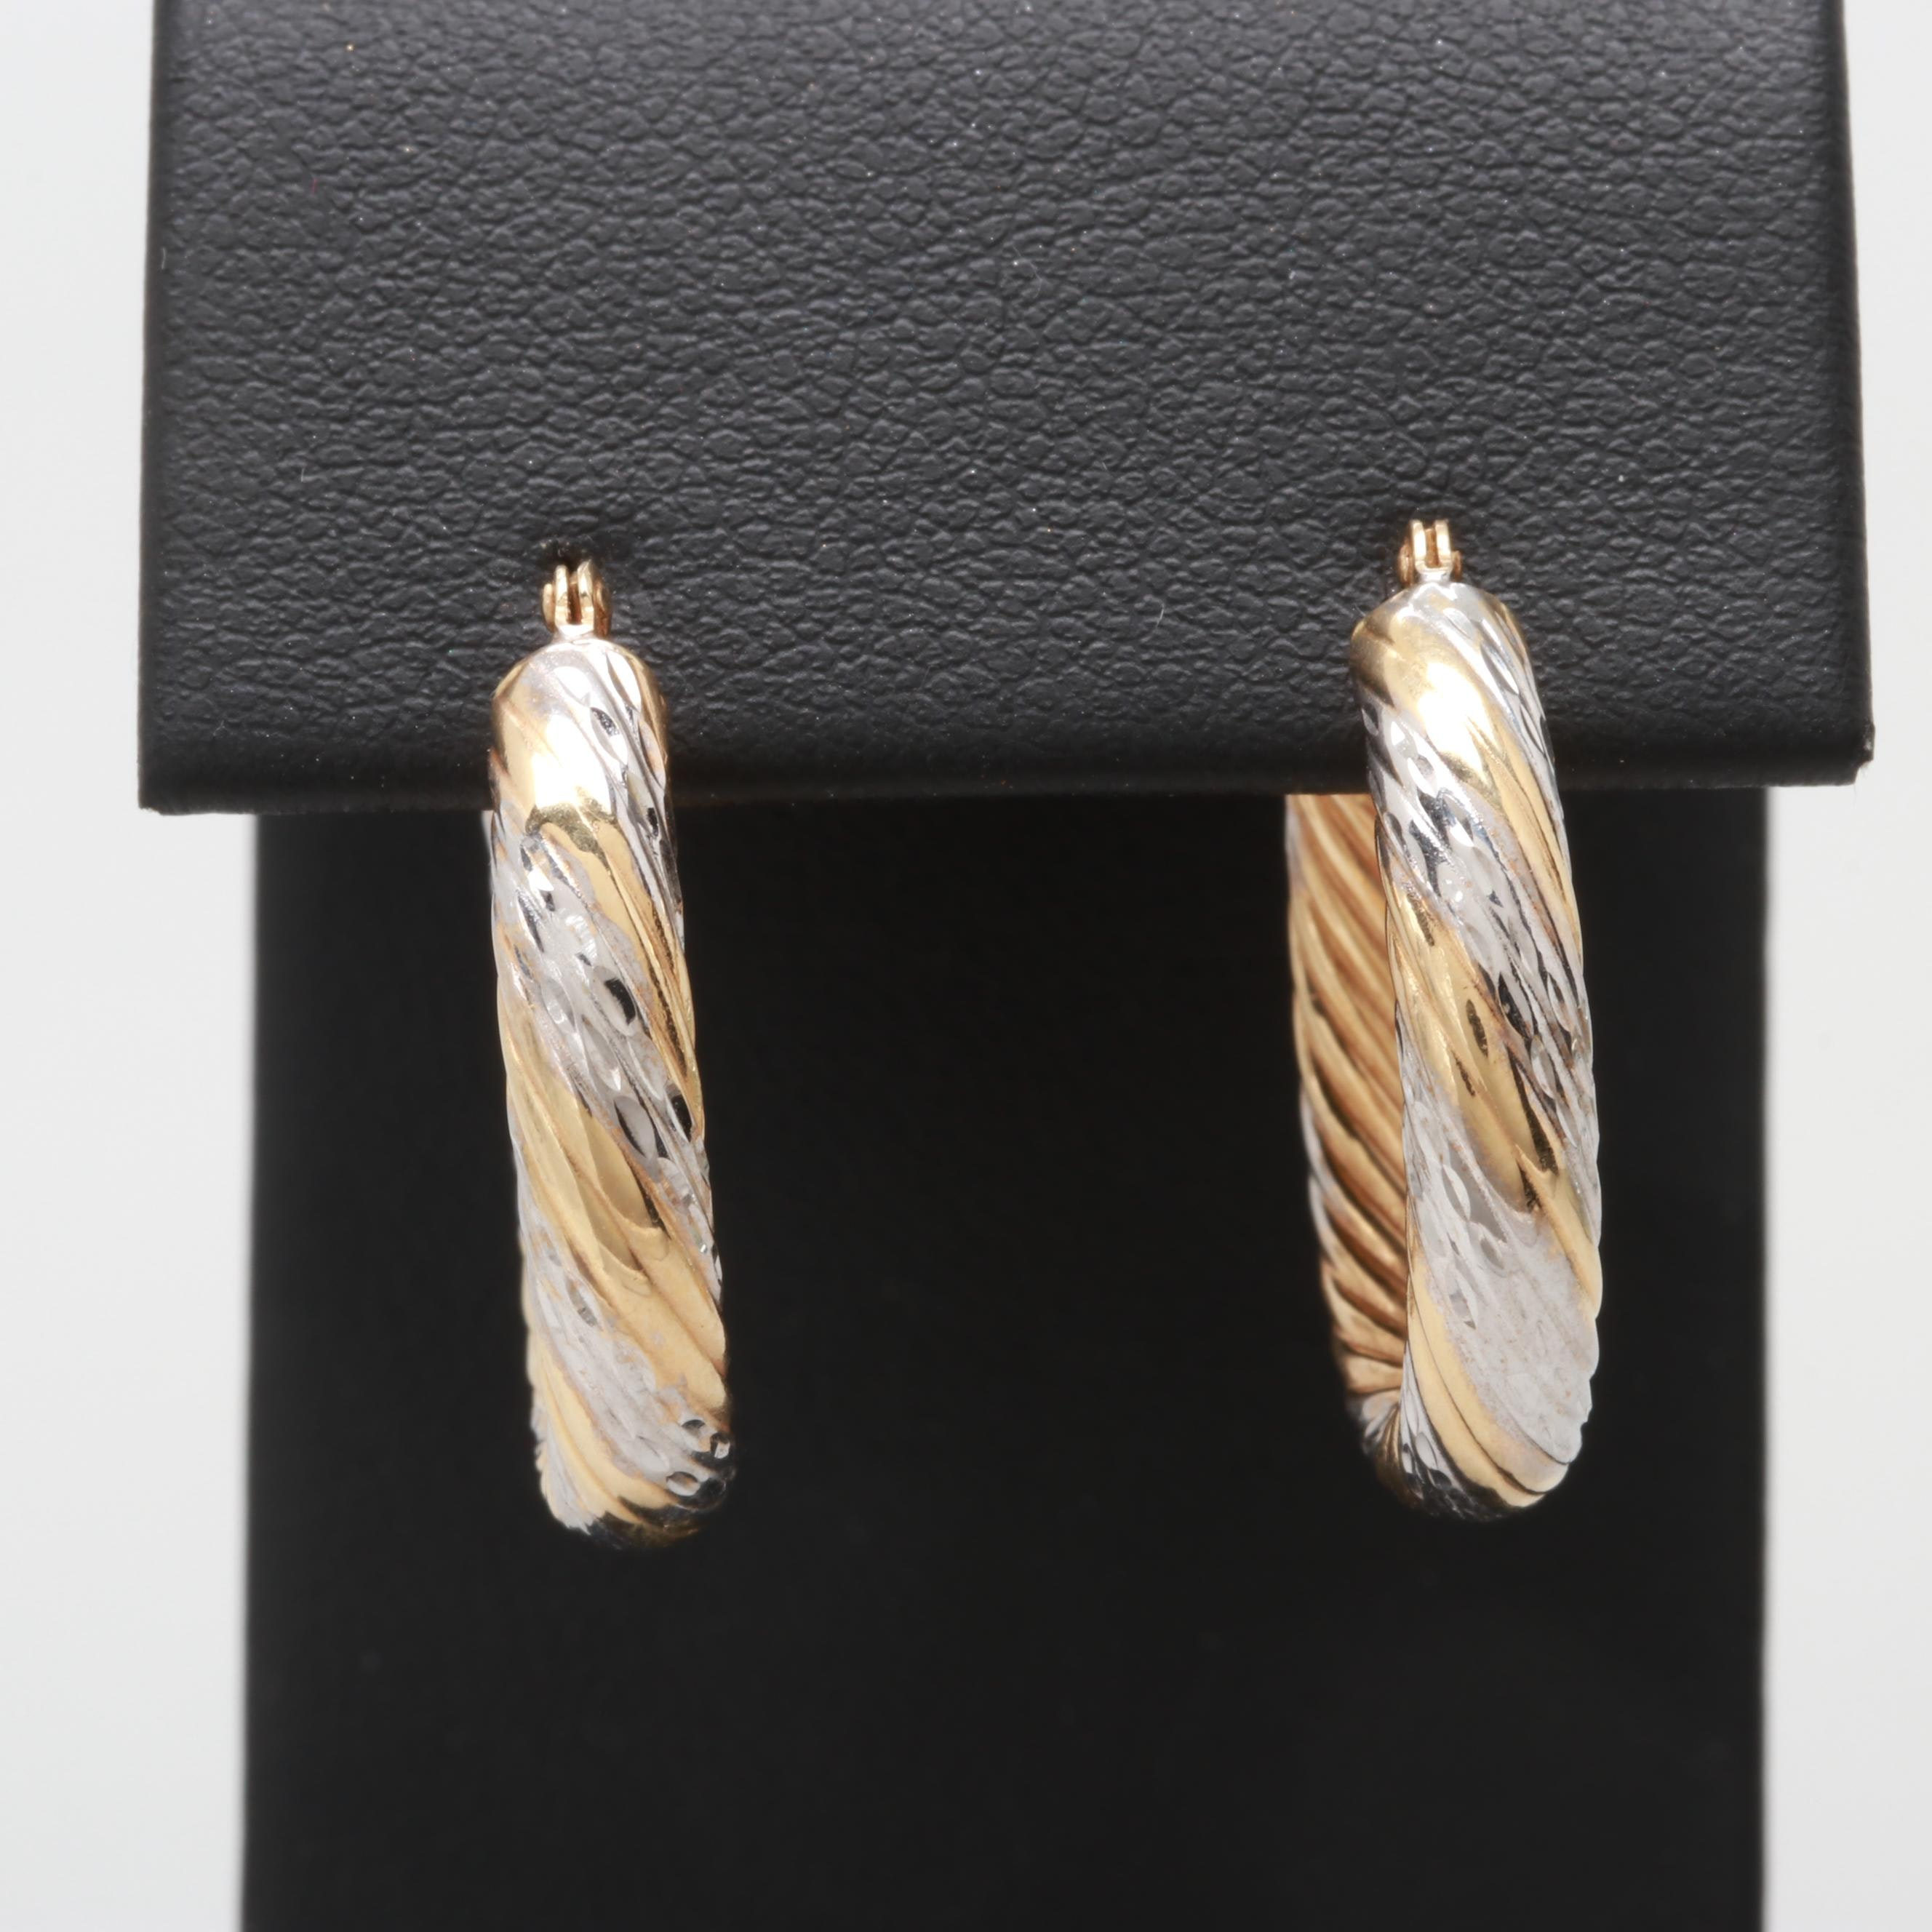 14K Yellow and White Gold Twist Textured Hoop Earrings